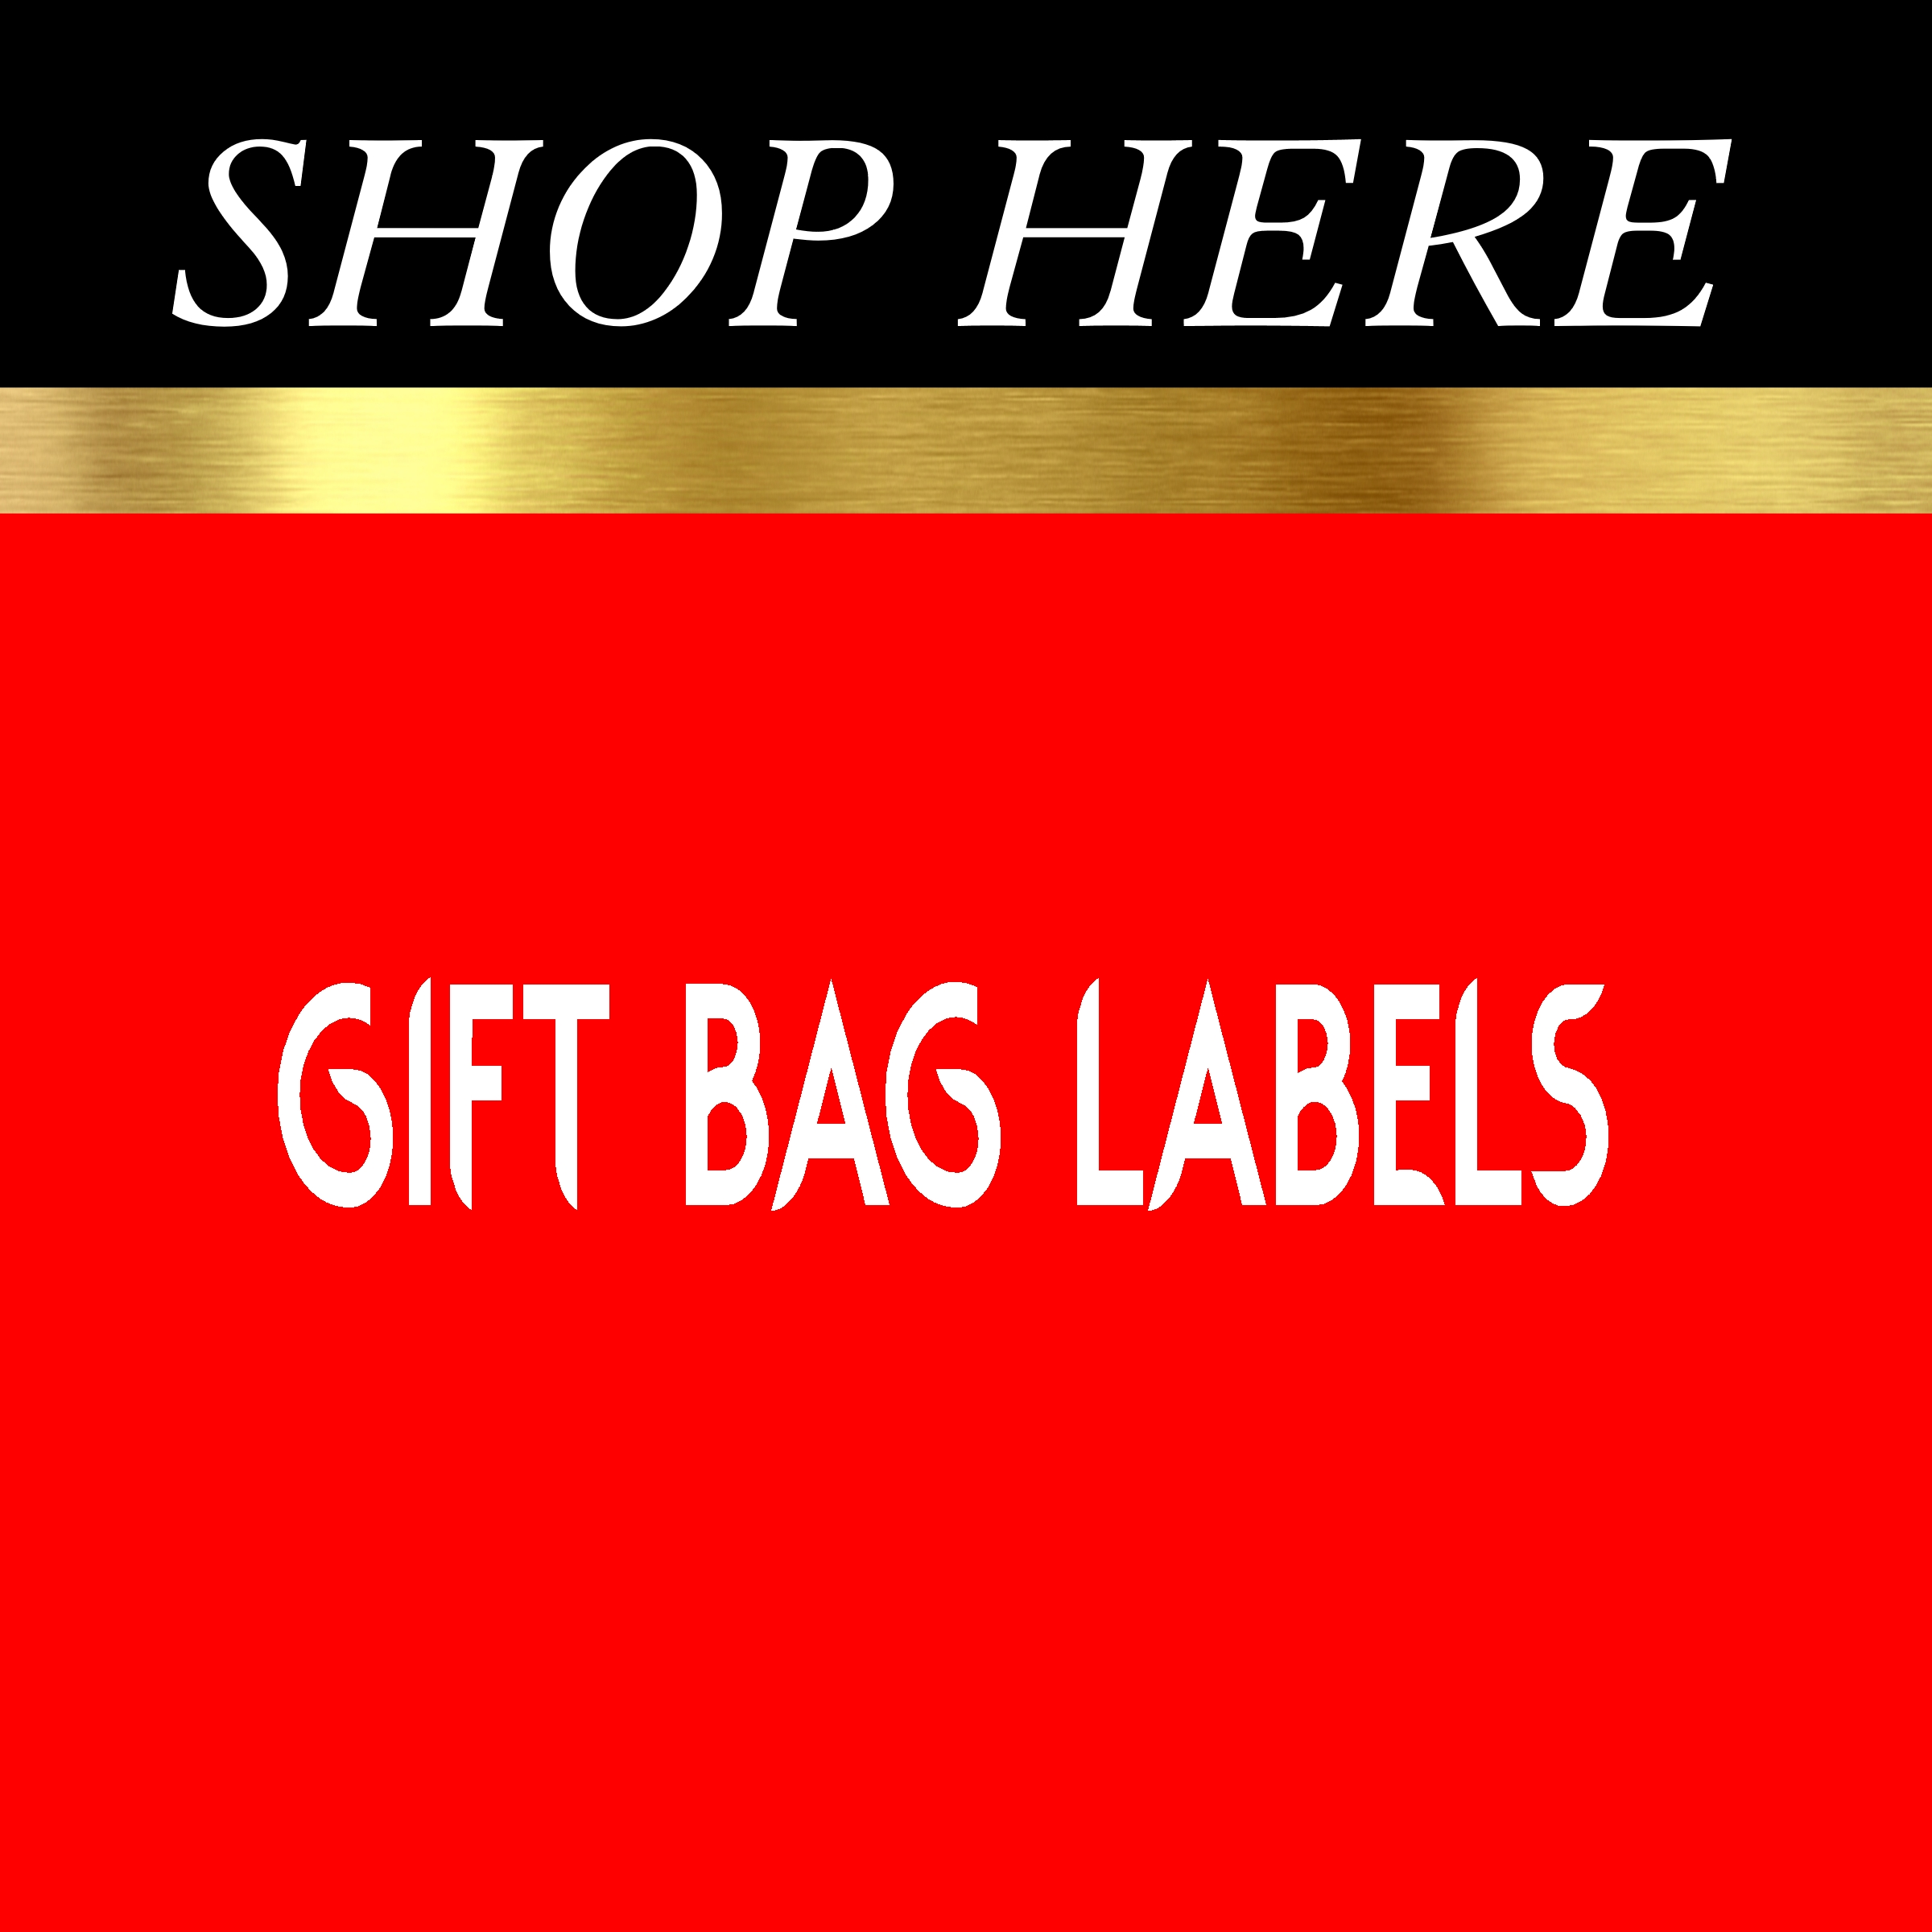 Gift Bag Labels